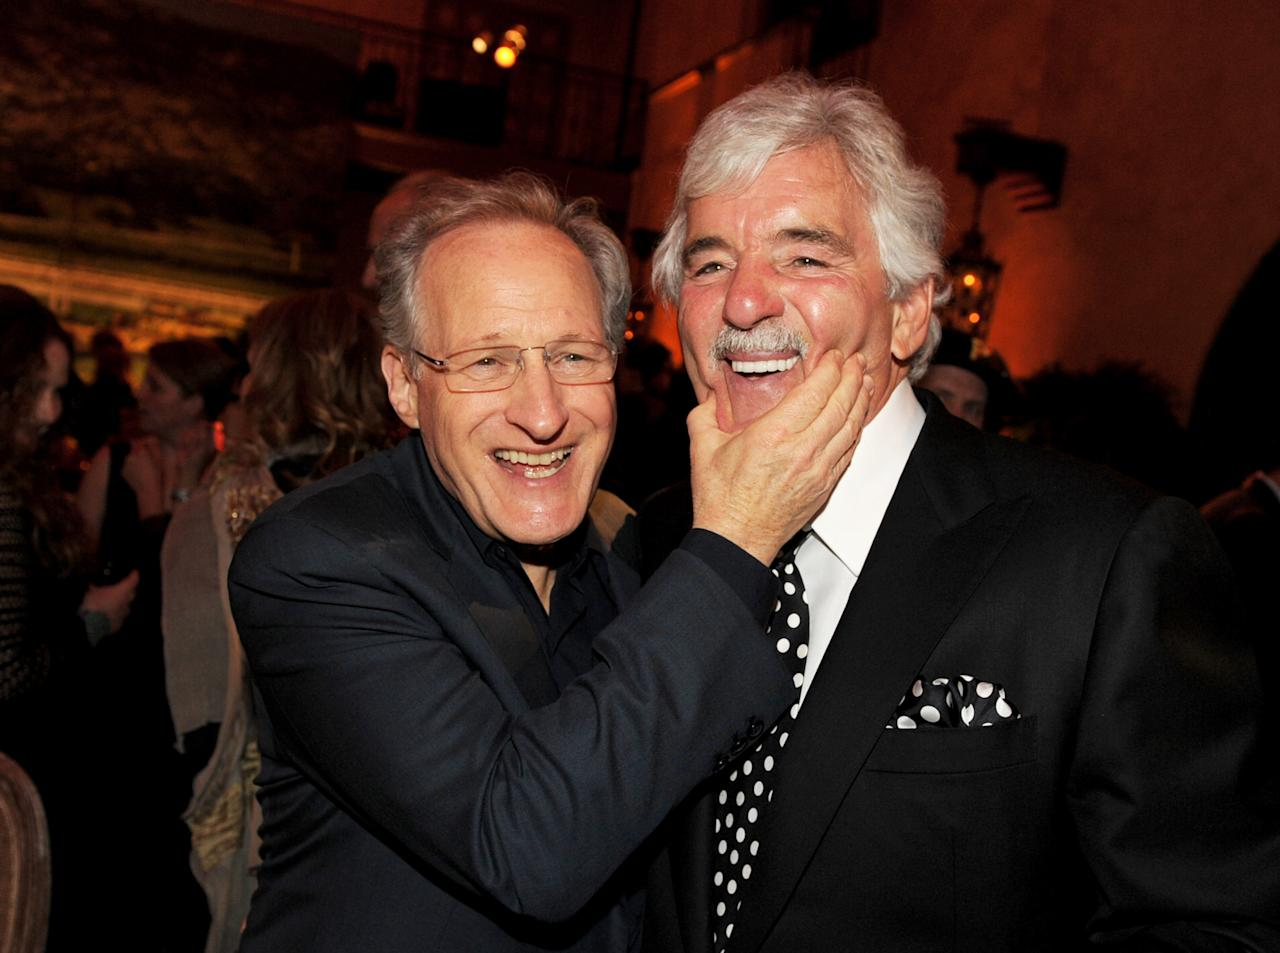 """LOS ANGELES, CA - JANUARY 25:  Executive producer/director Michael Mann (L) and actor Dennis Farina pose at the after party for the premiere of HBO's """"Luck"""" at the Roosevelt Hotel on January 25, 2012 in Los Angeles, California.  (Photo by Kevin Winter/Getty Images)"""